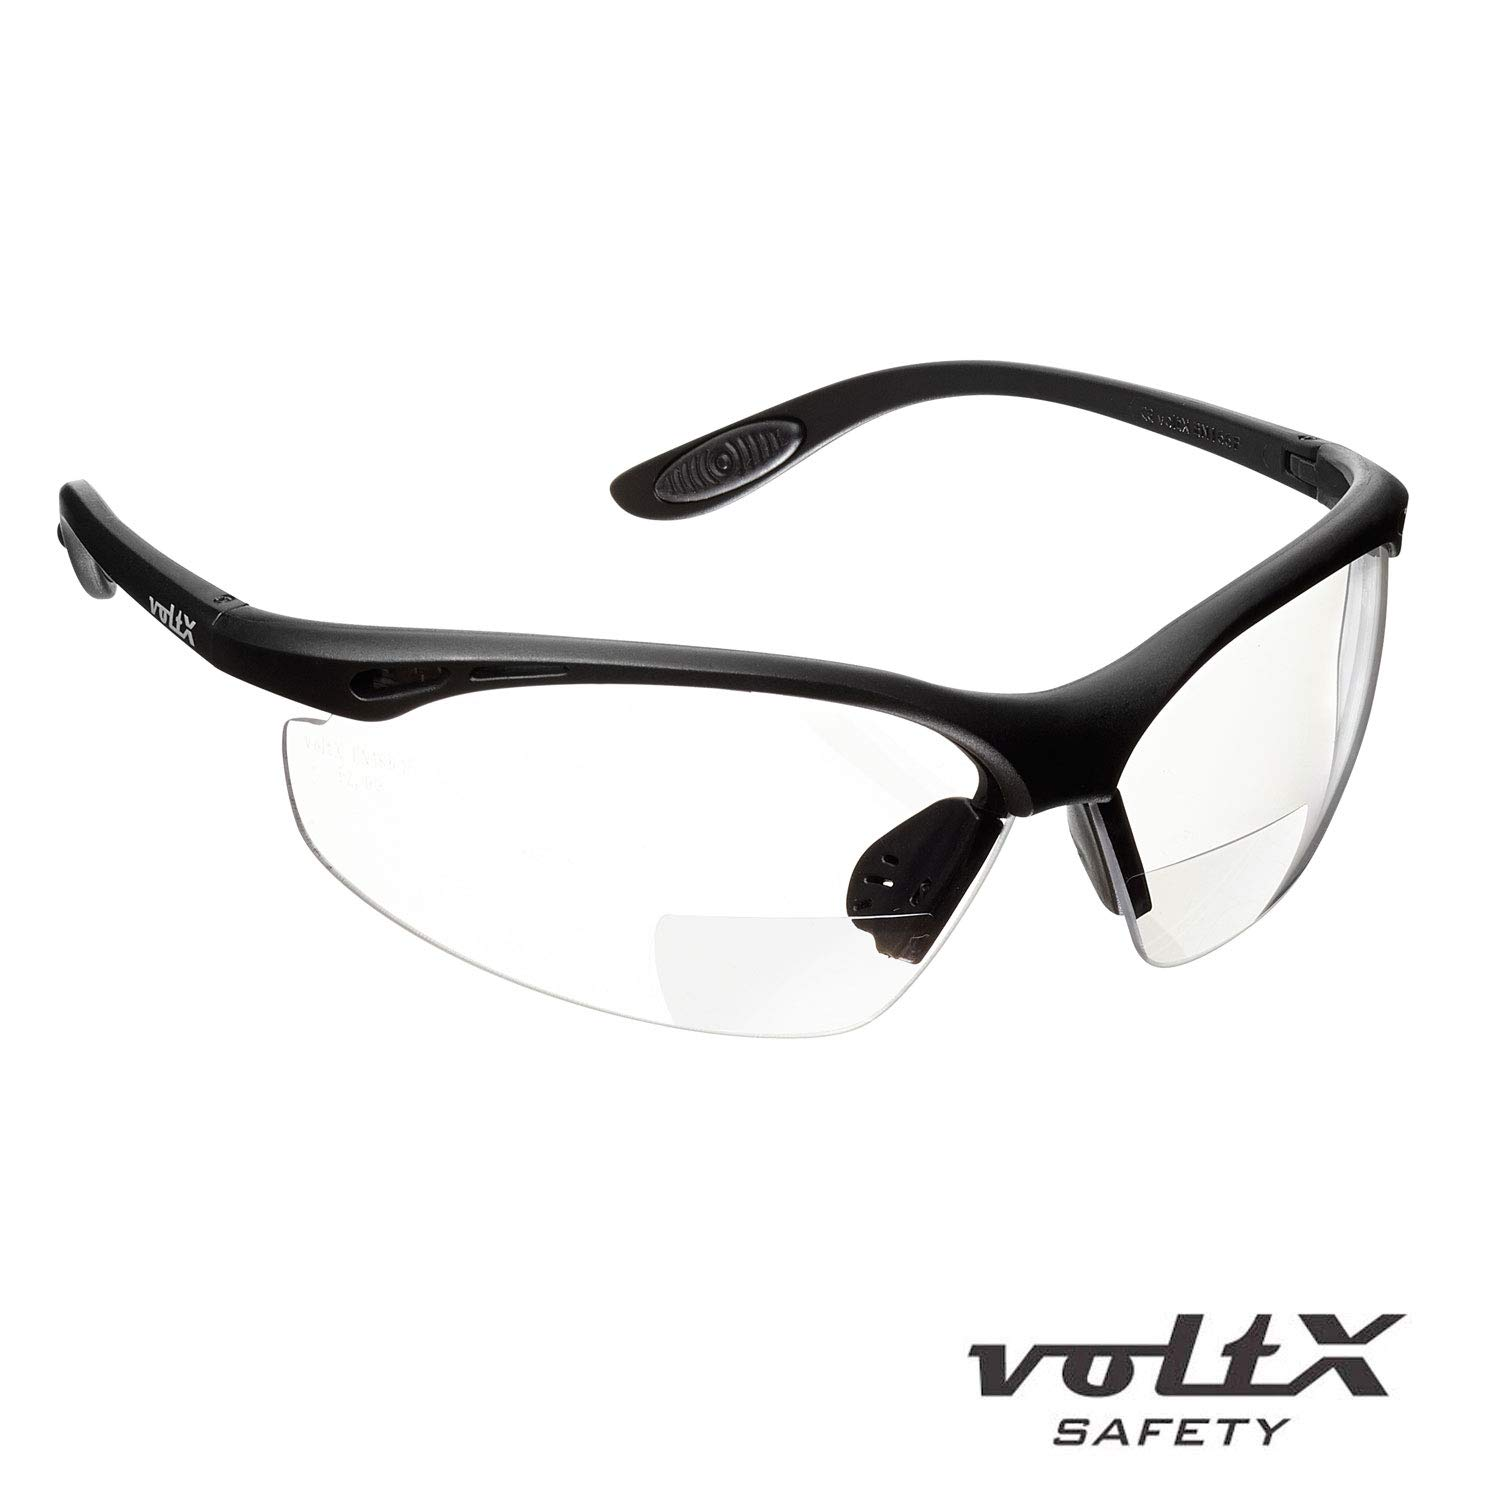 CE EN166F certified//Cycling Sports Glasses includes safety cord voltX CONSTRUCTOR BIFOCAL Reading Safety Glasses CLEAR +1.5 Dioptre